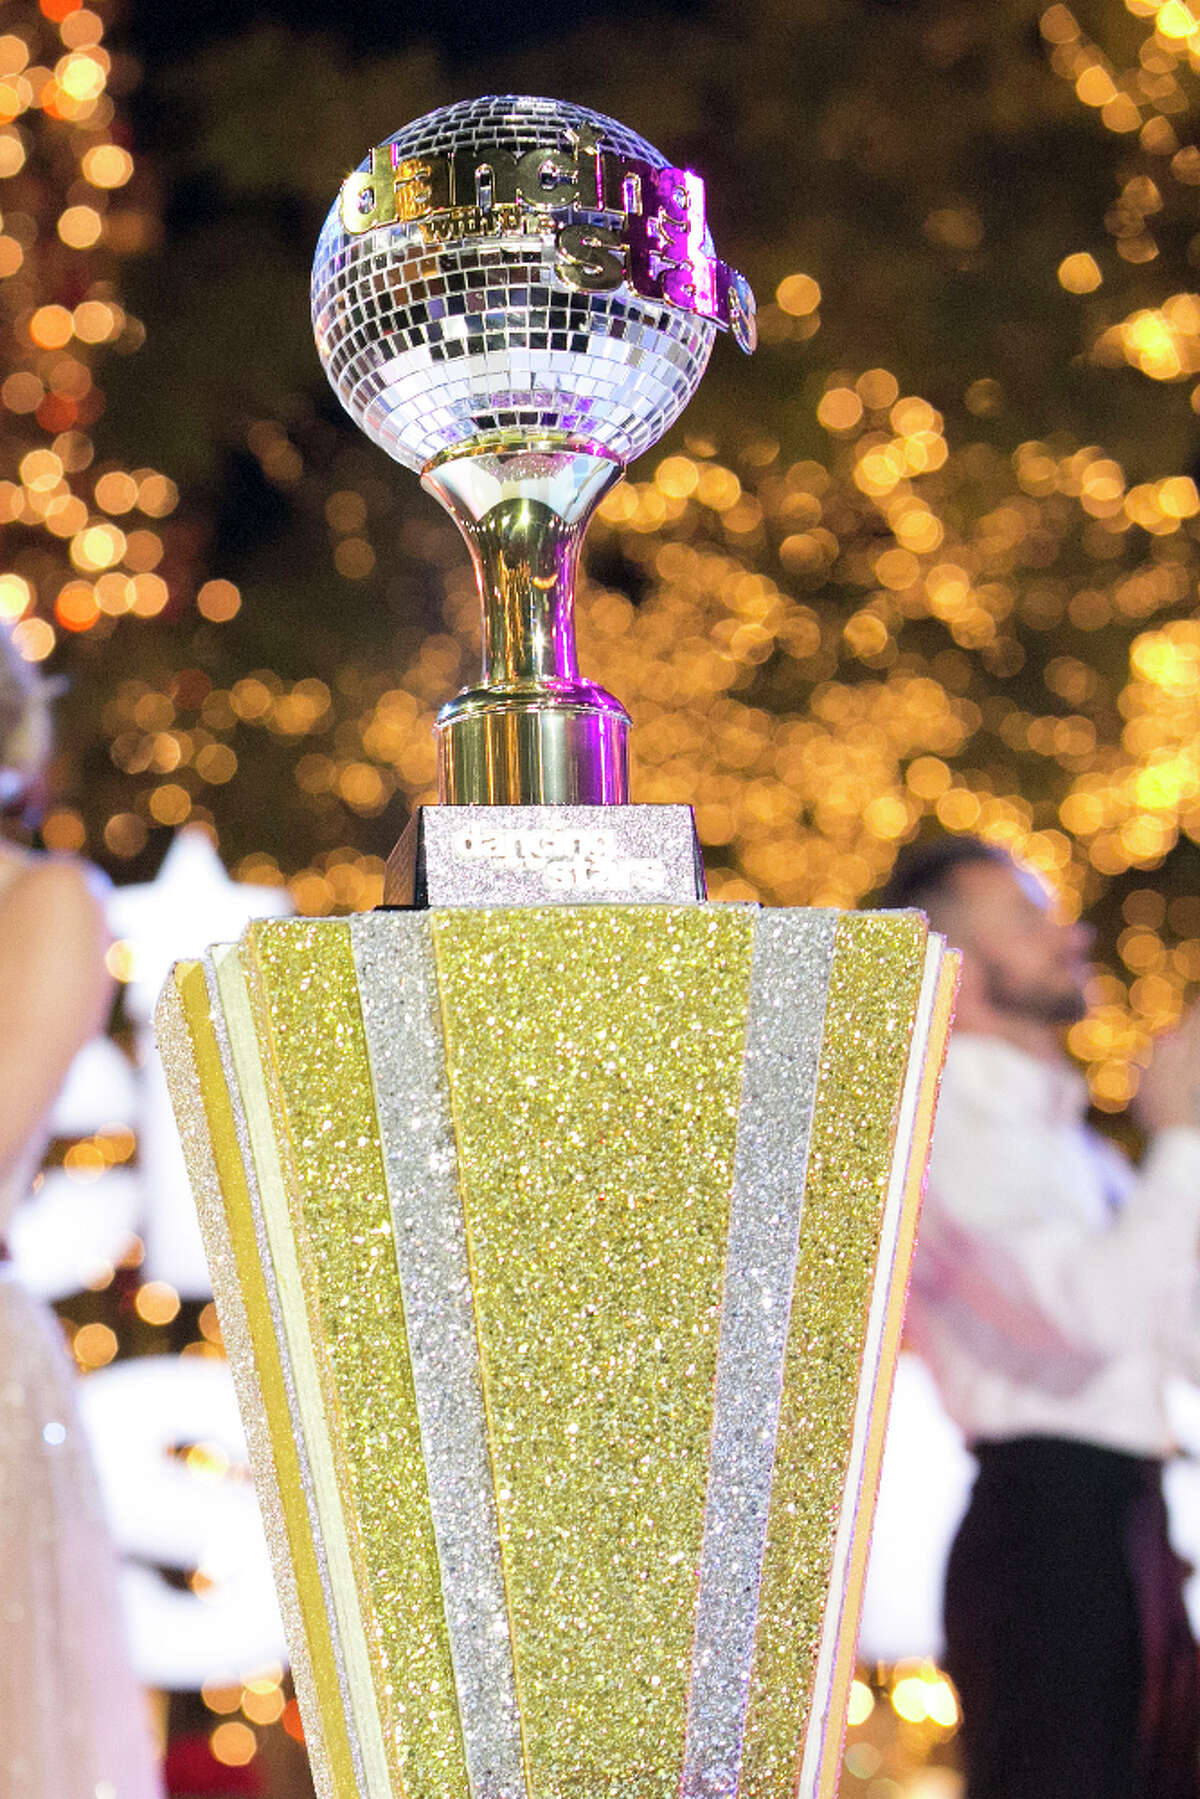 DANCING WITH THE STARS CAST REVEAL See who will be dancing for the mirror ball trophy in Season 24 ...